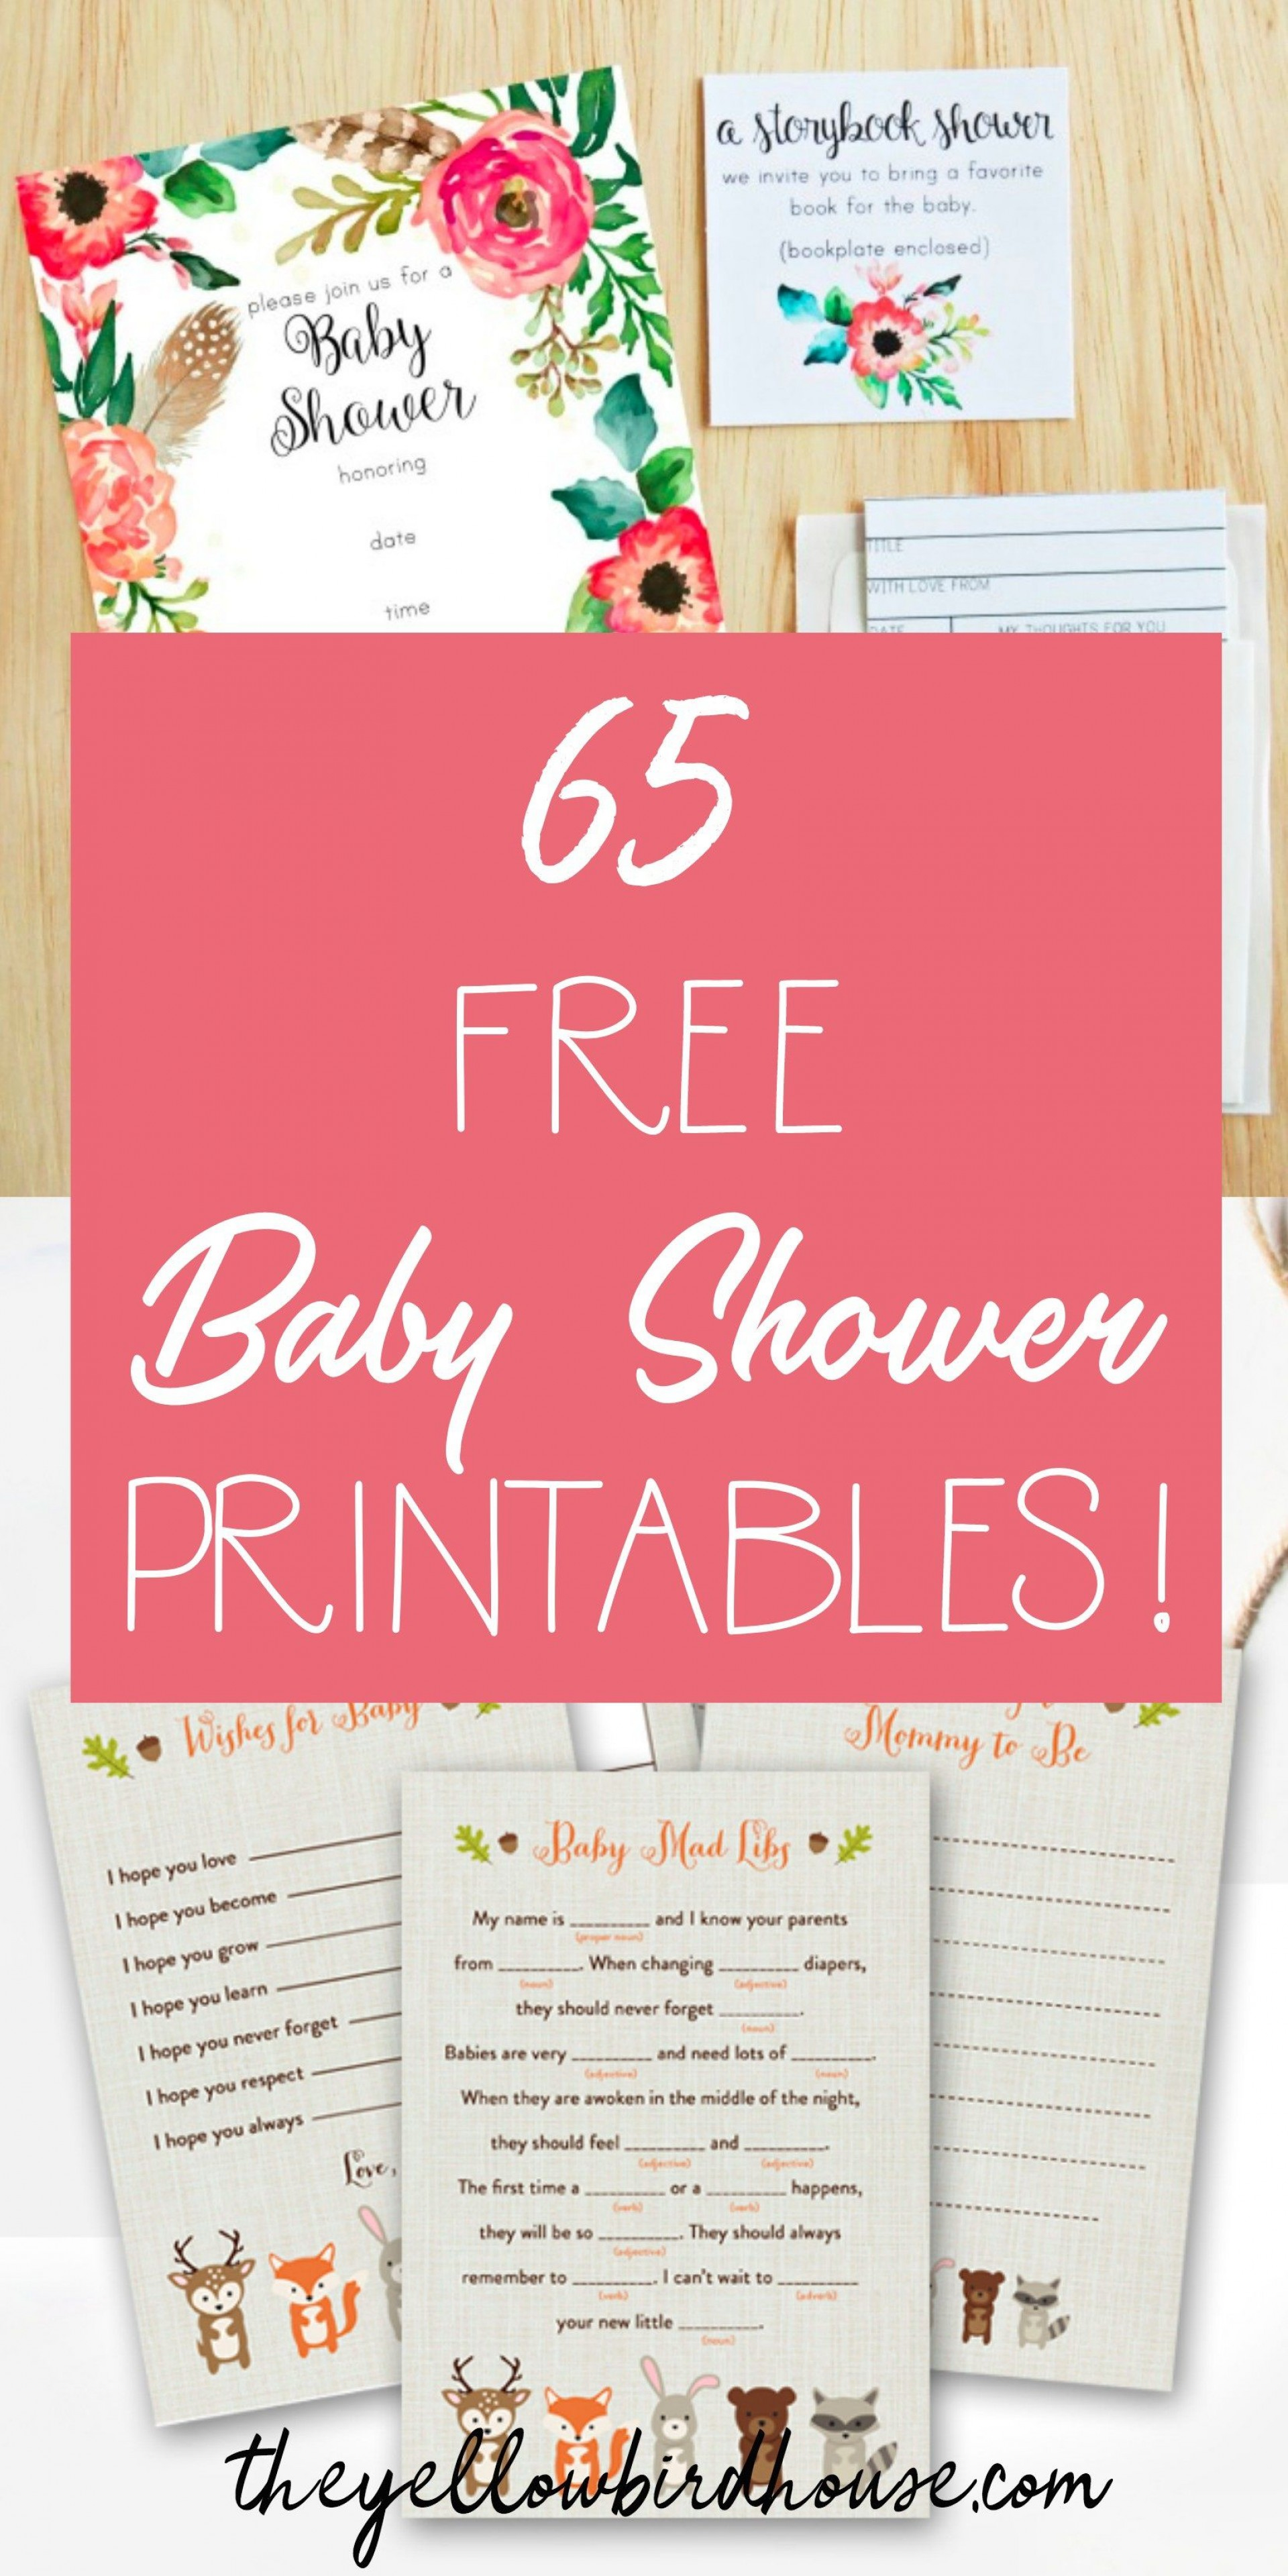 007 Fascinating Free Baby Shower Printable Girl Picture  Invitation1920